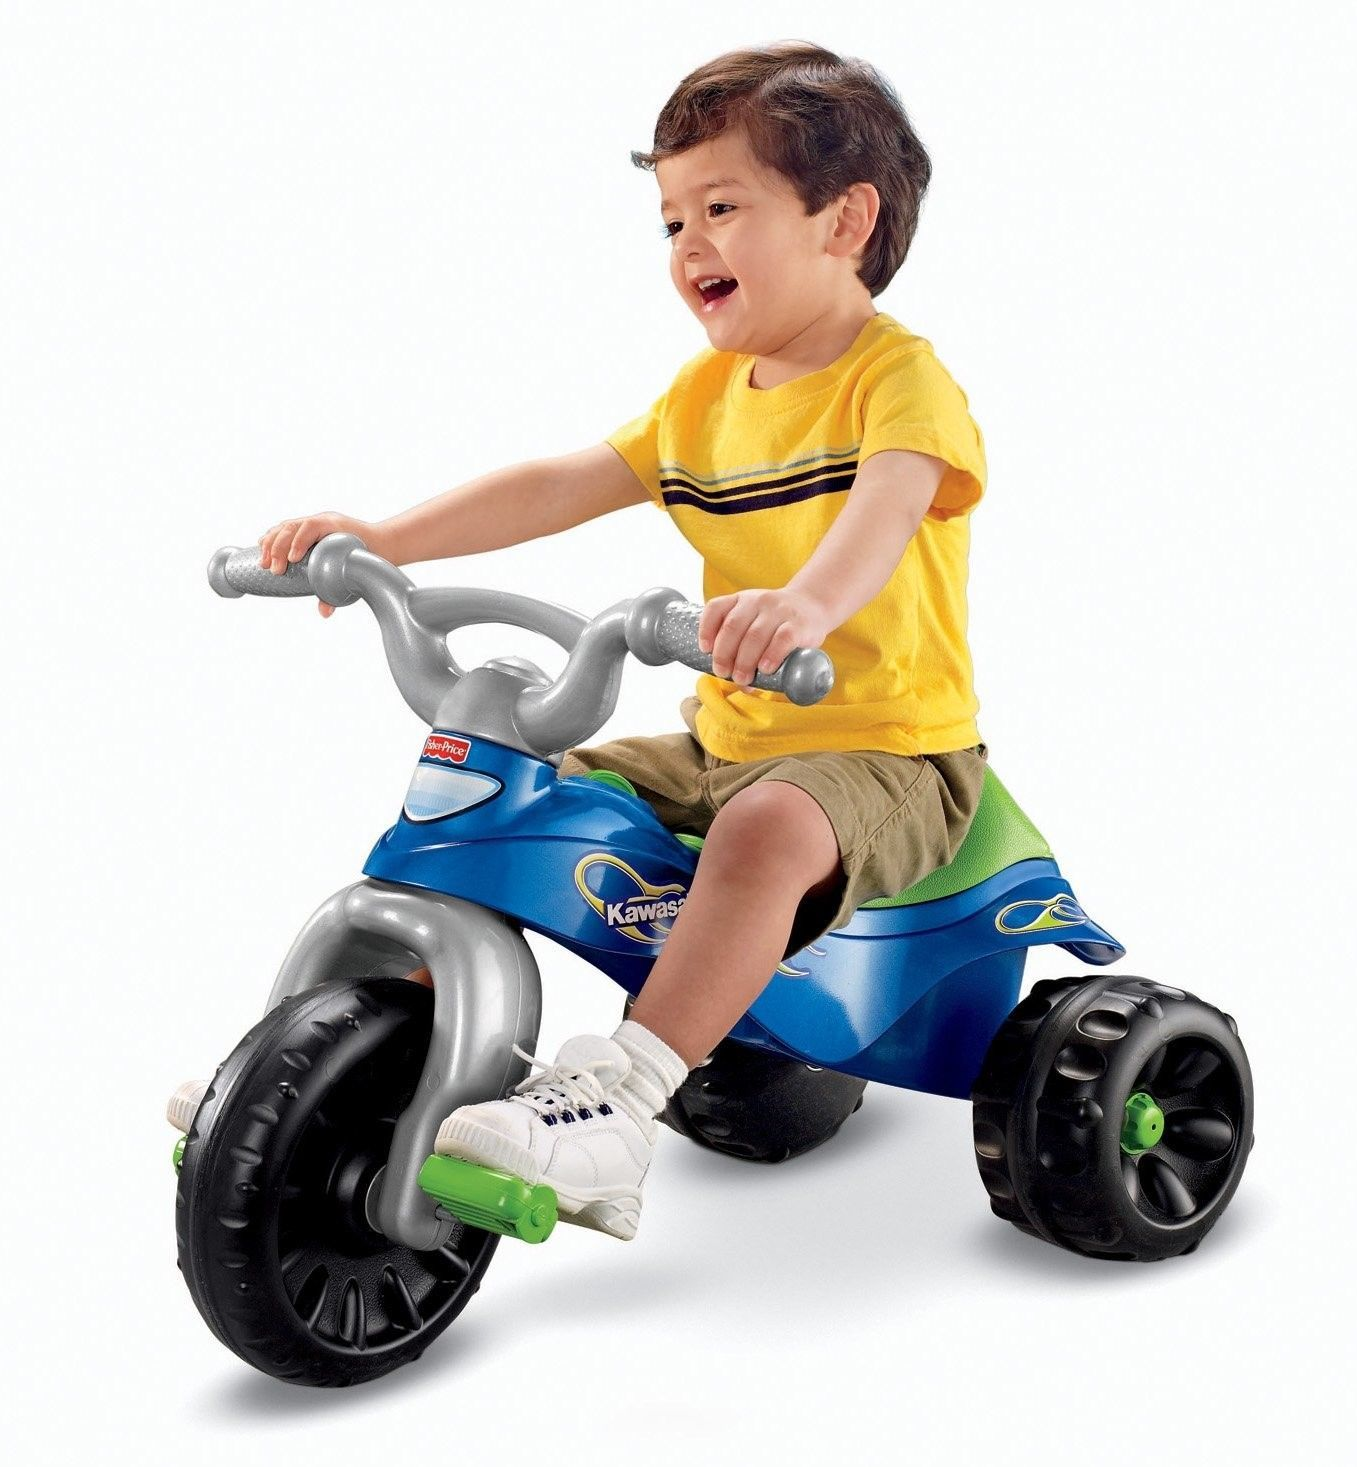 tricycles for 3 year olds boys Kawasaki Tough Trike cool toys for